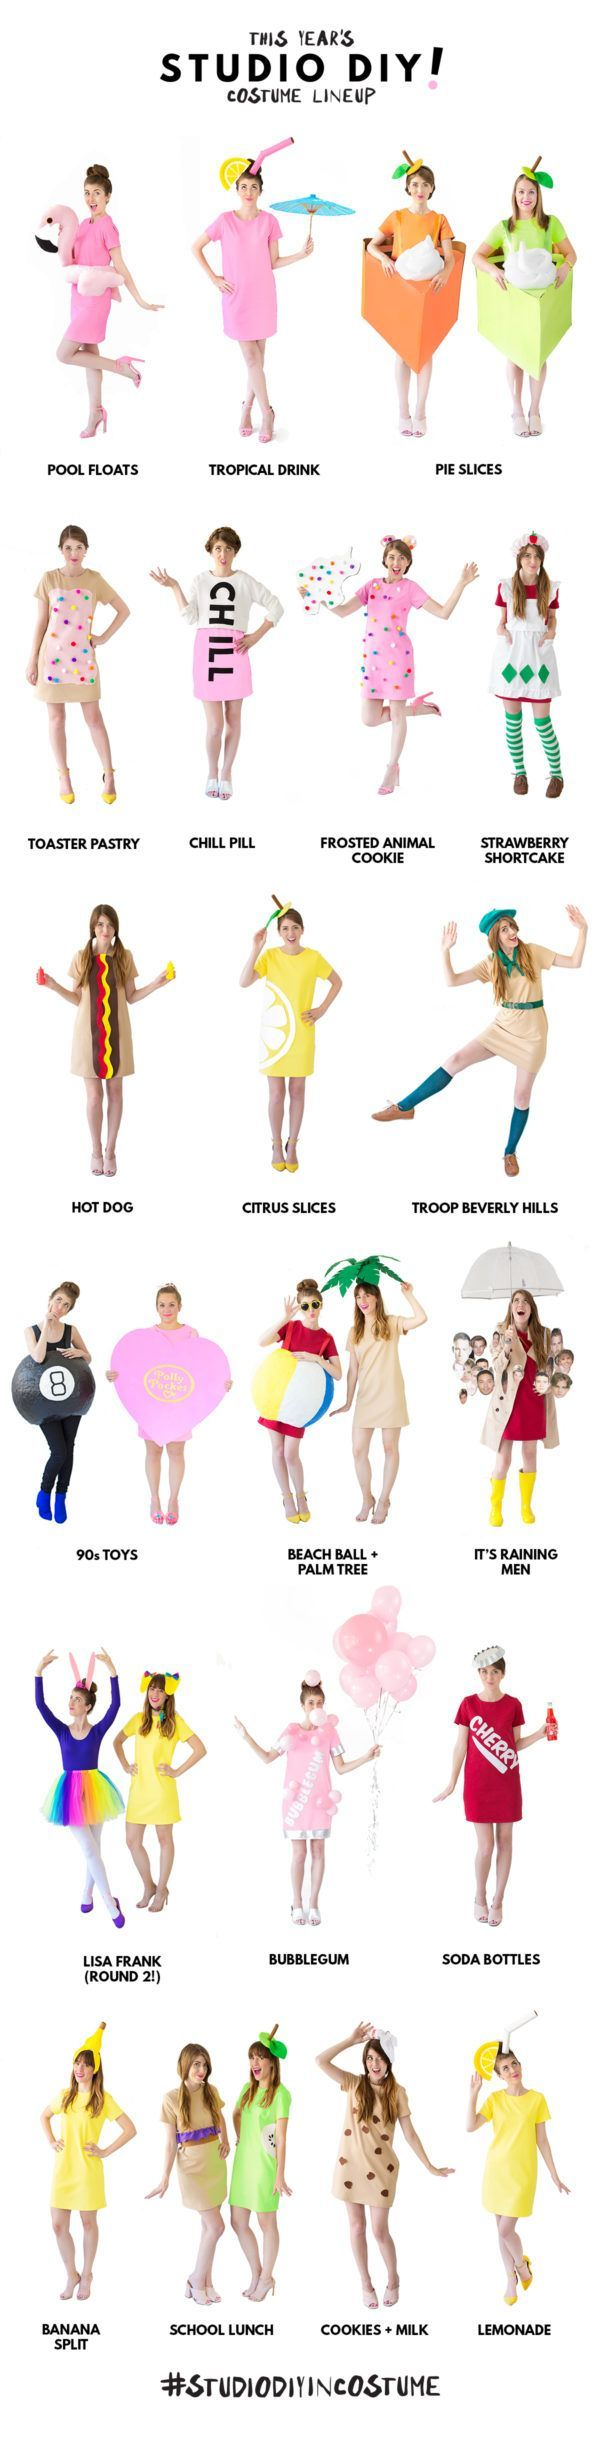 Our 2016 DIY Costume Lineup! | http://studiodiy.com